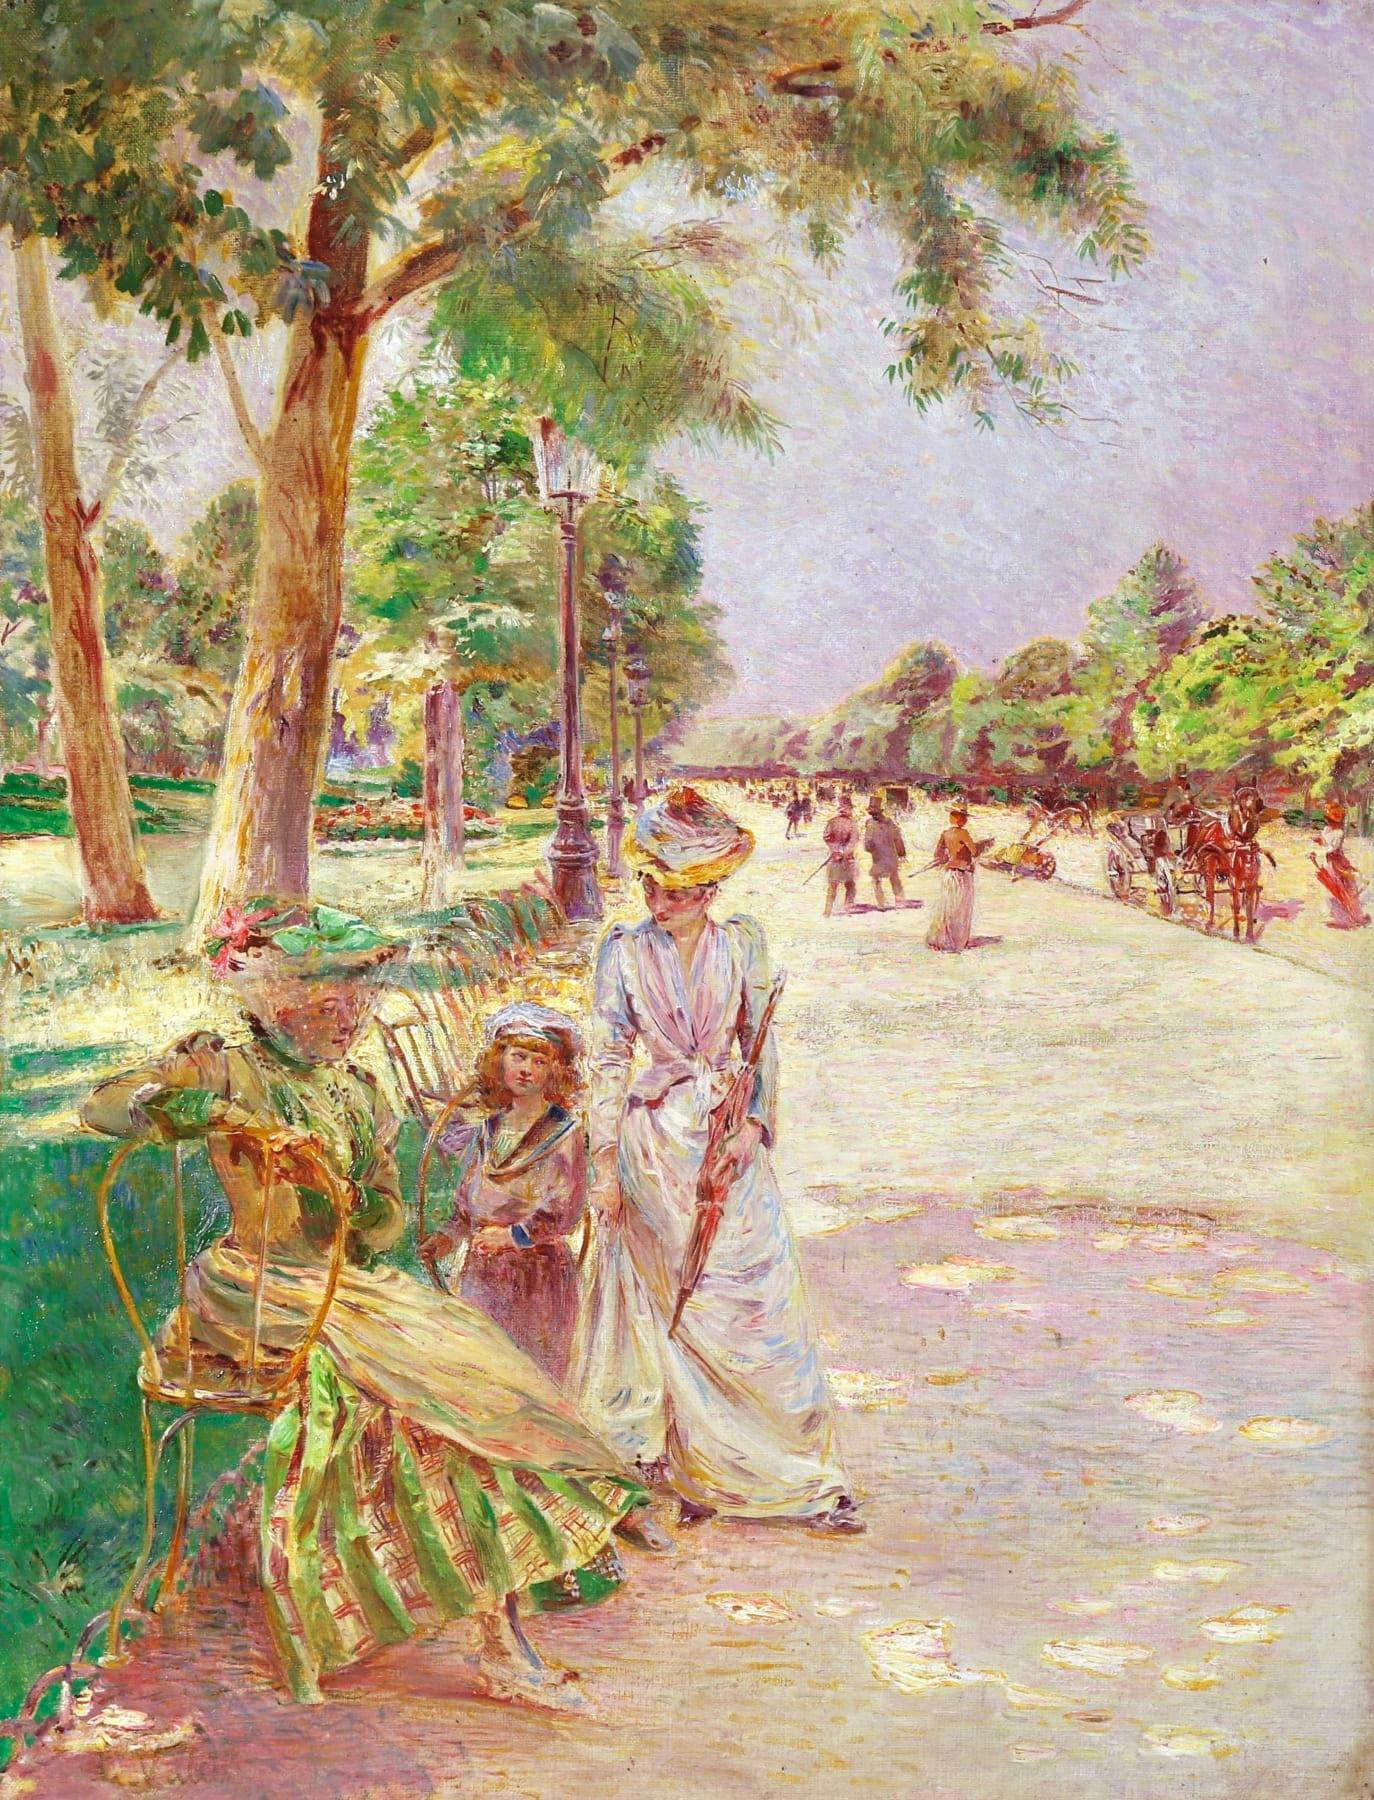 Tuileries Garden - Impressionist Oil, Figures in Landscape by Ludovic Vallee